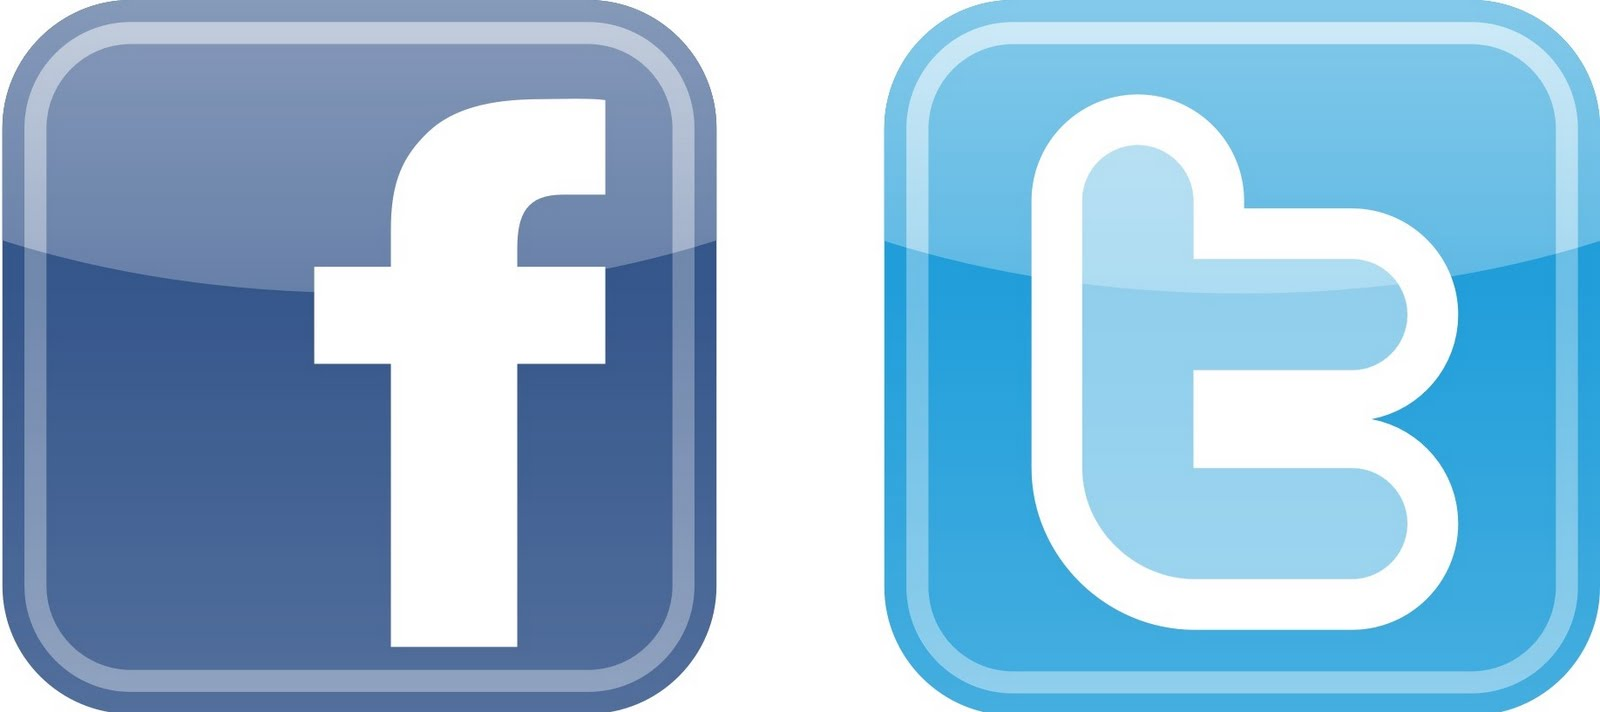 facebook.twitter button